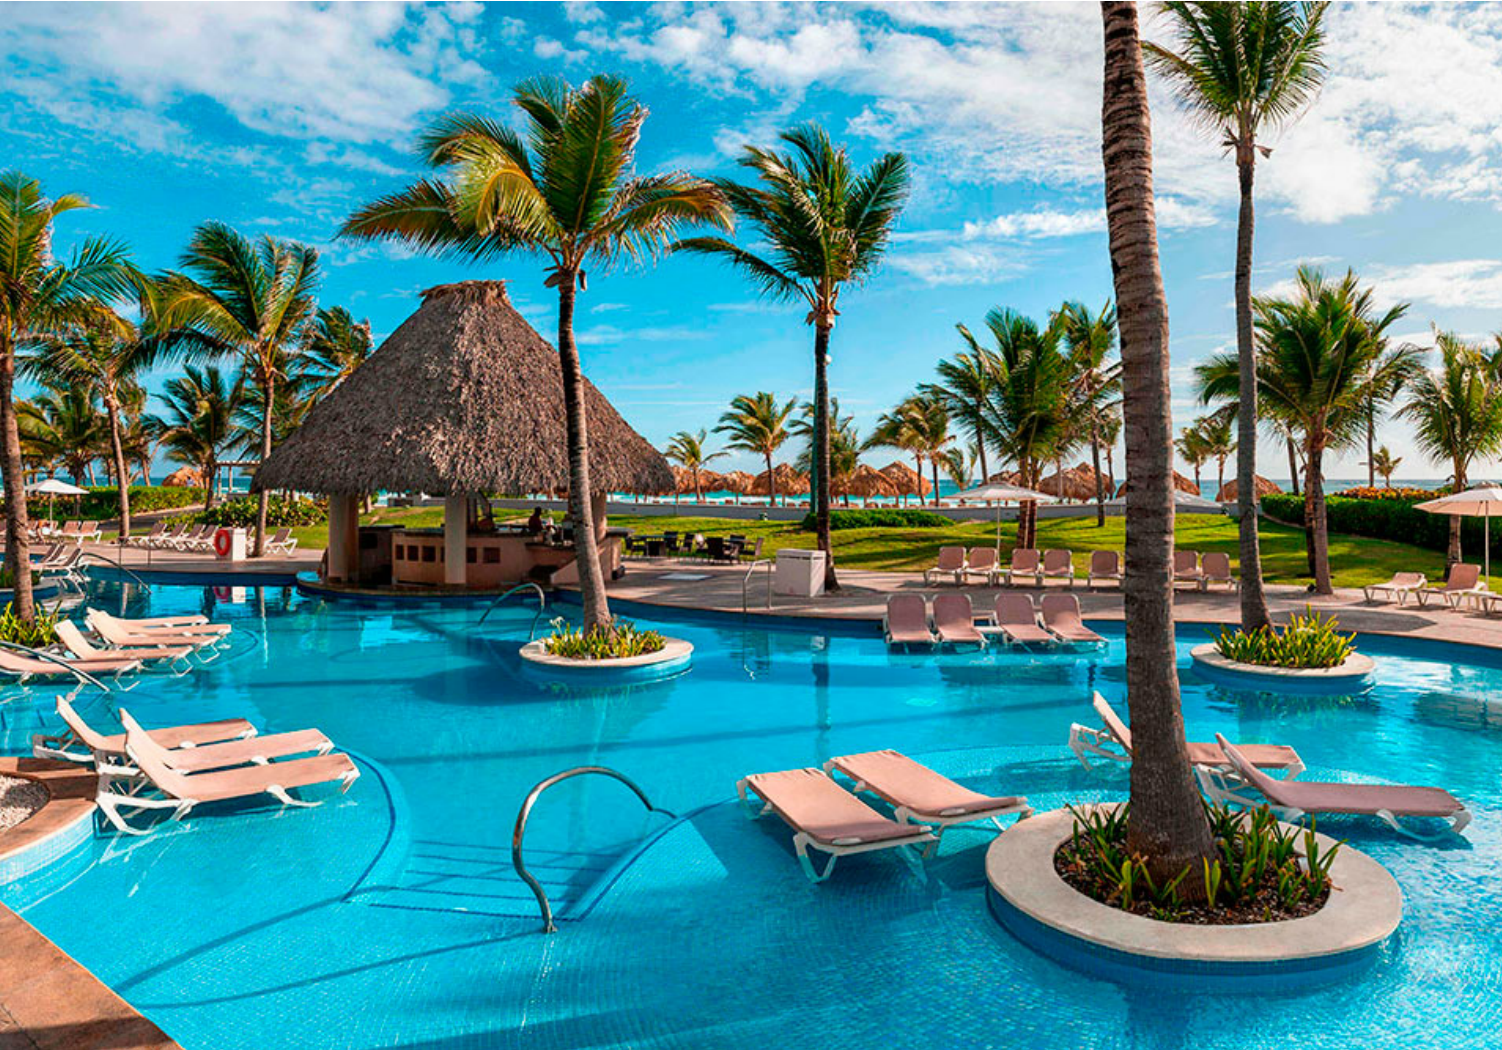 The top 7 all inclusive hotels in the dr s puerto plata hard rock hotel casino punta cana